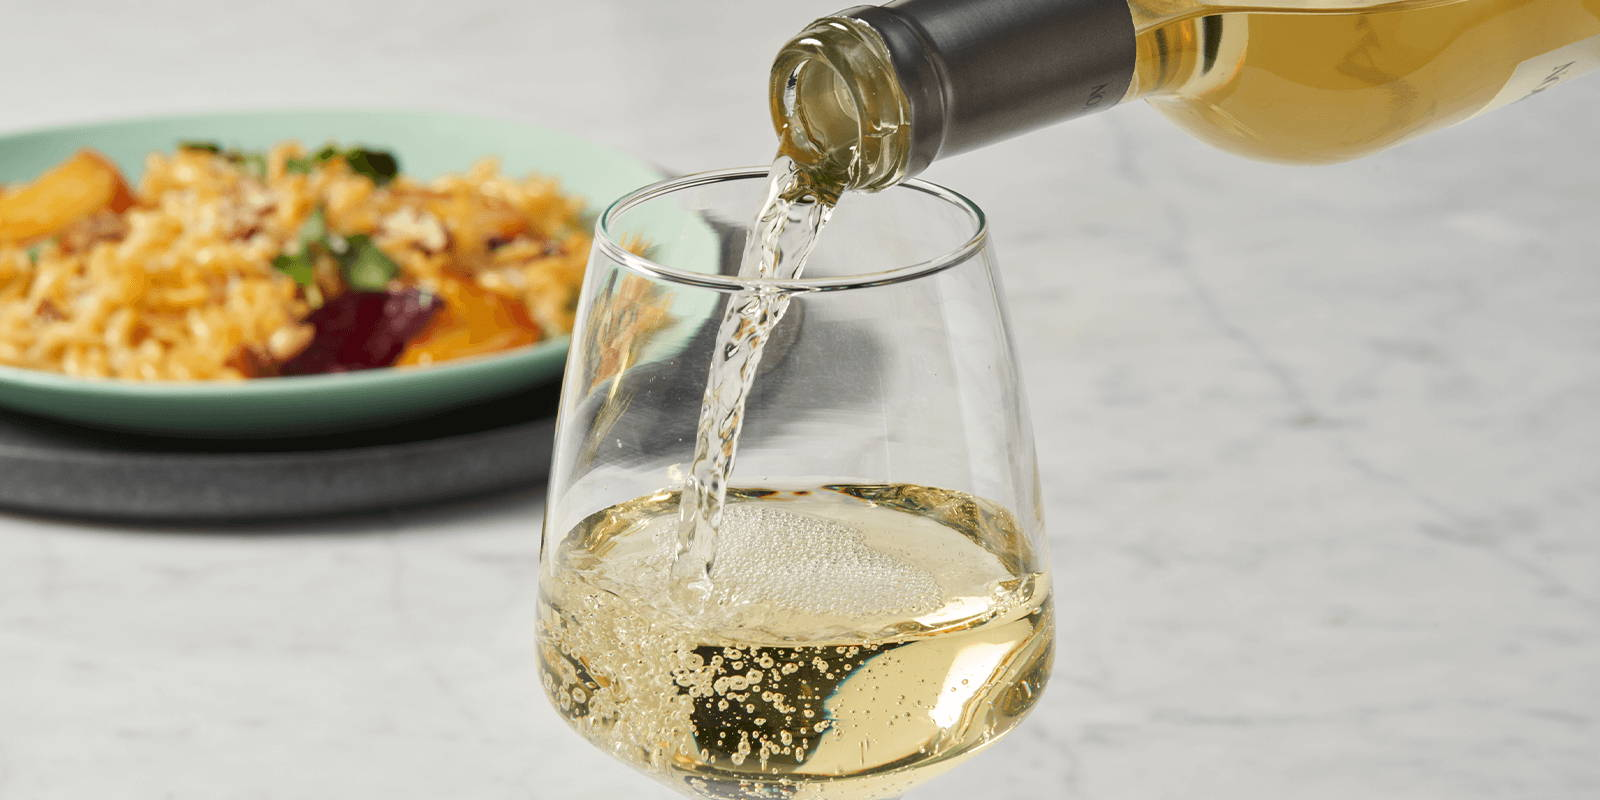 Pouring white wine into a glass.